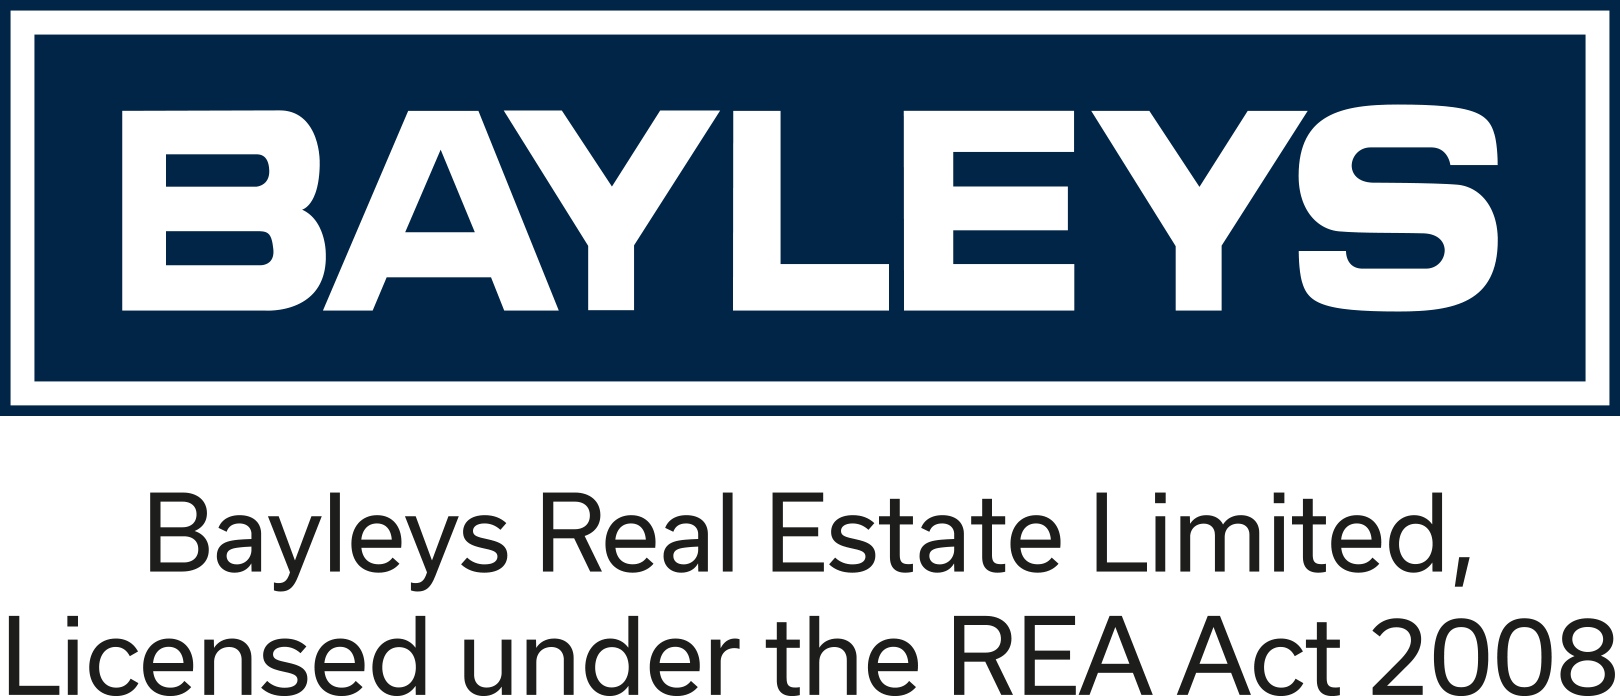 Bayleys Updated Logo